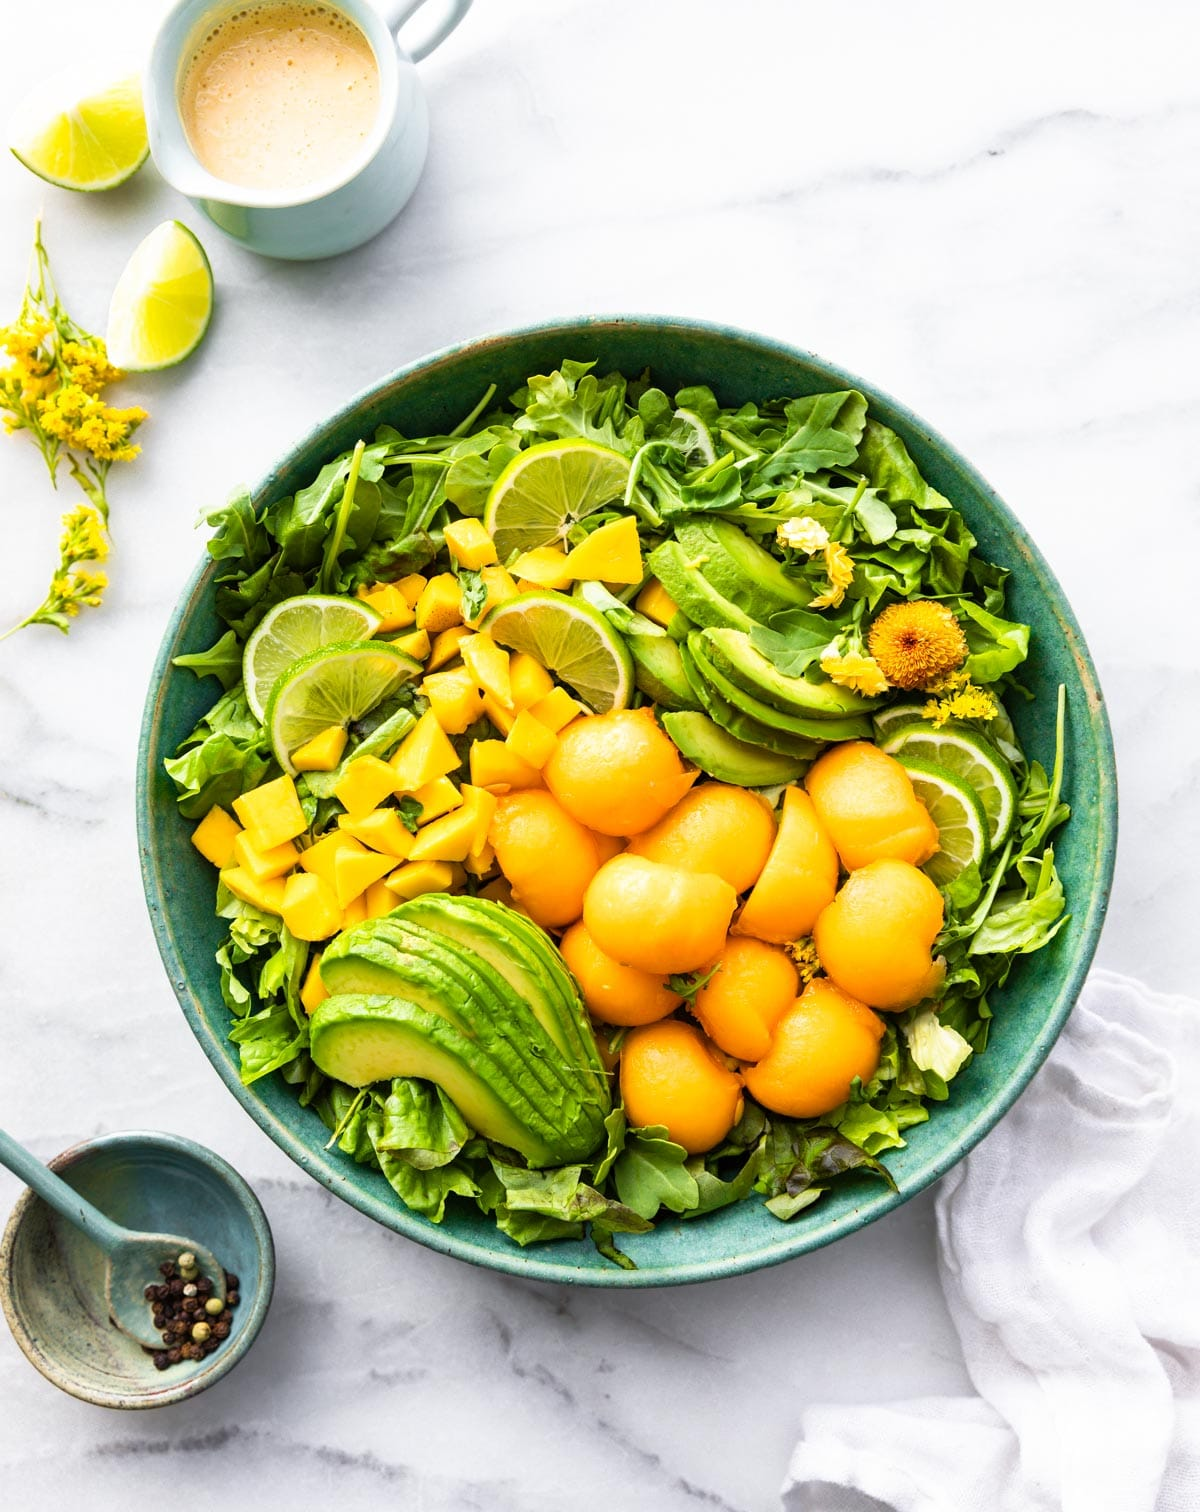 bowl of healthy fruit salad with pieces of mango avocado and cantaloupe